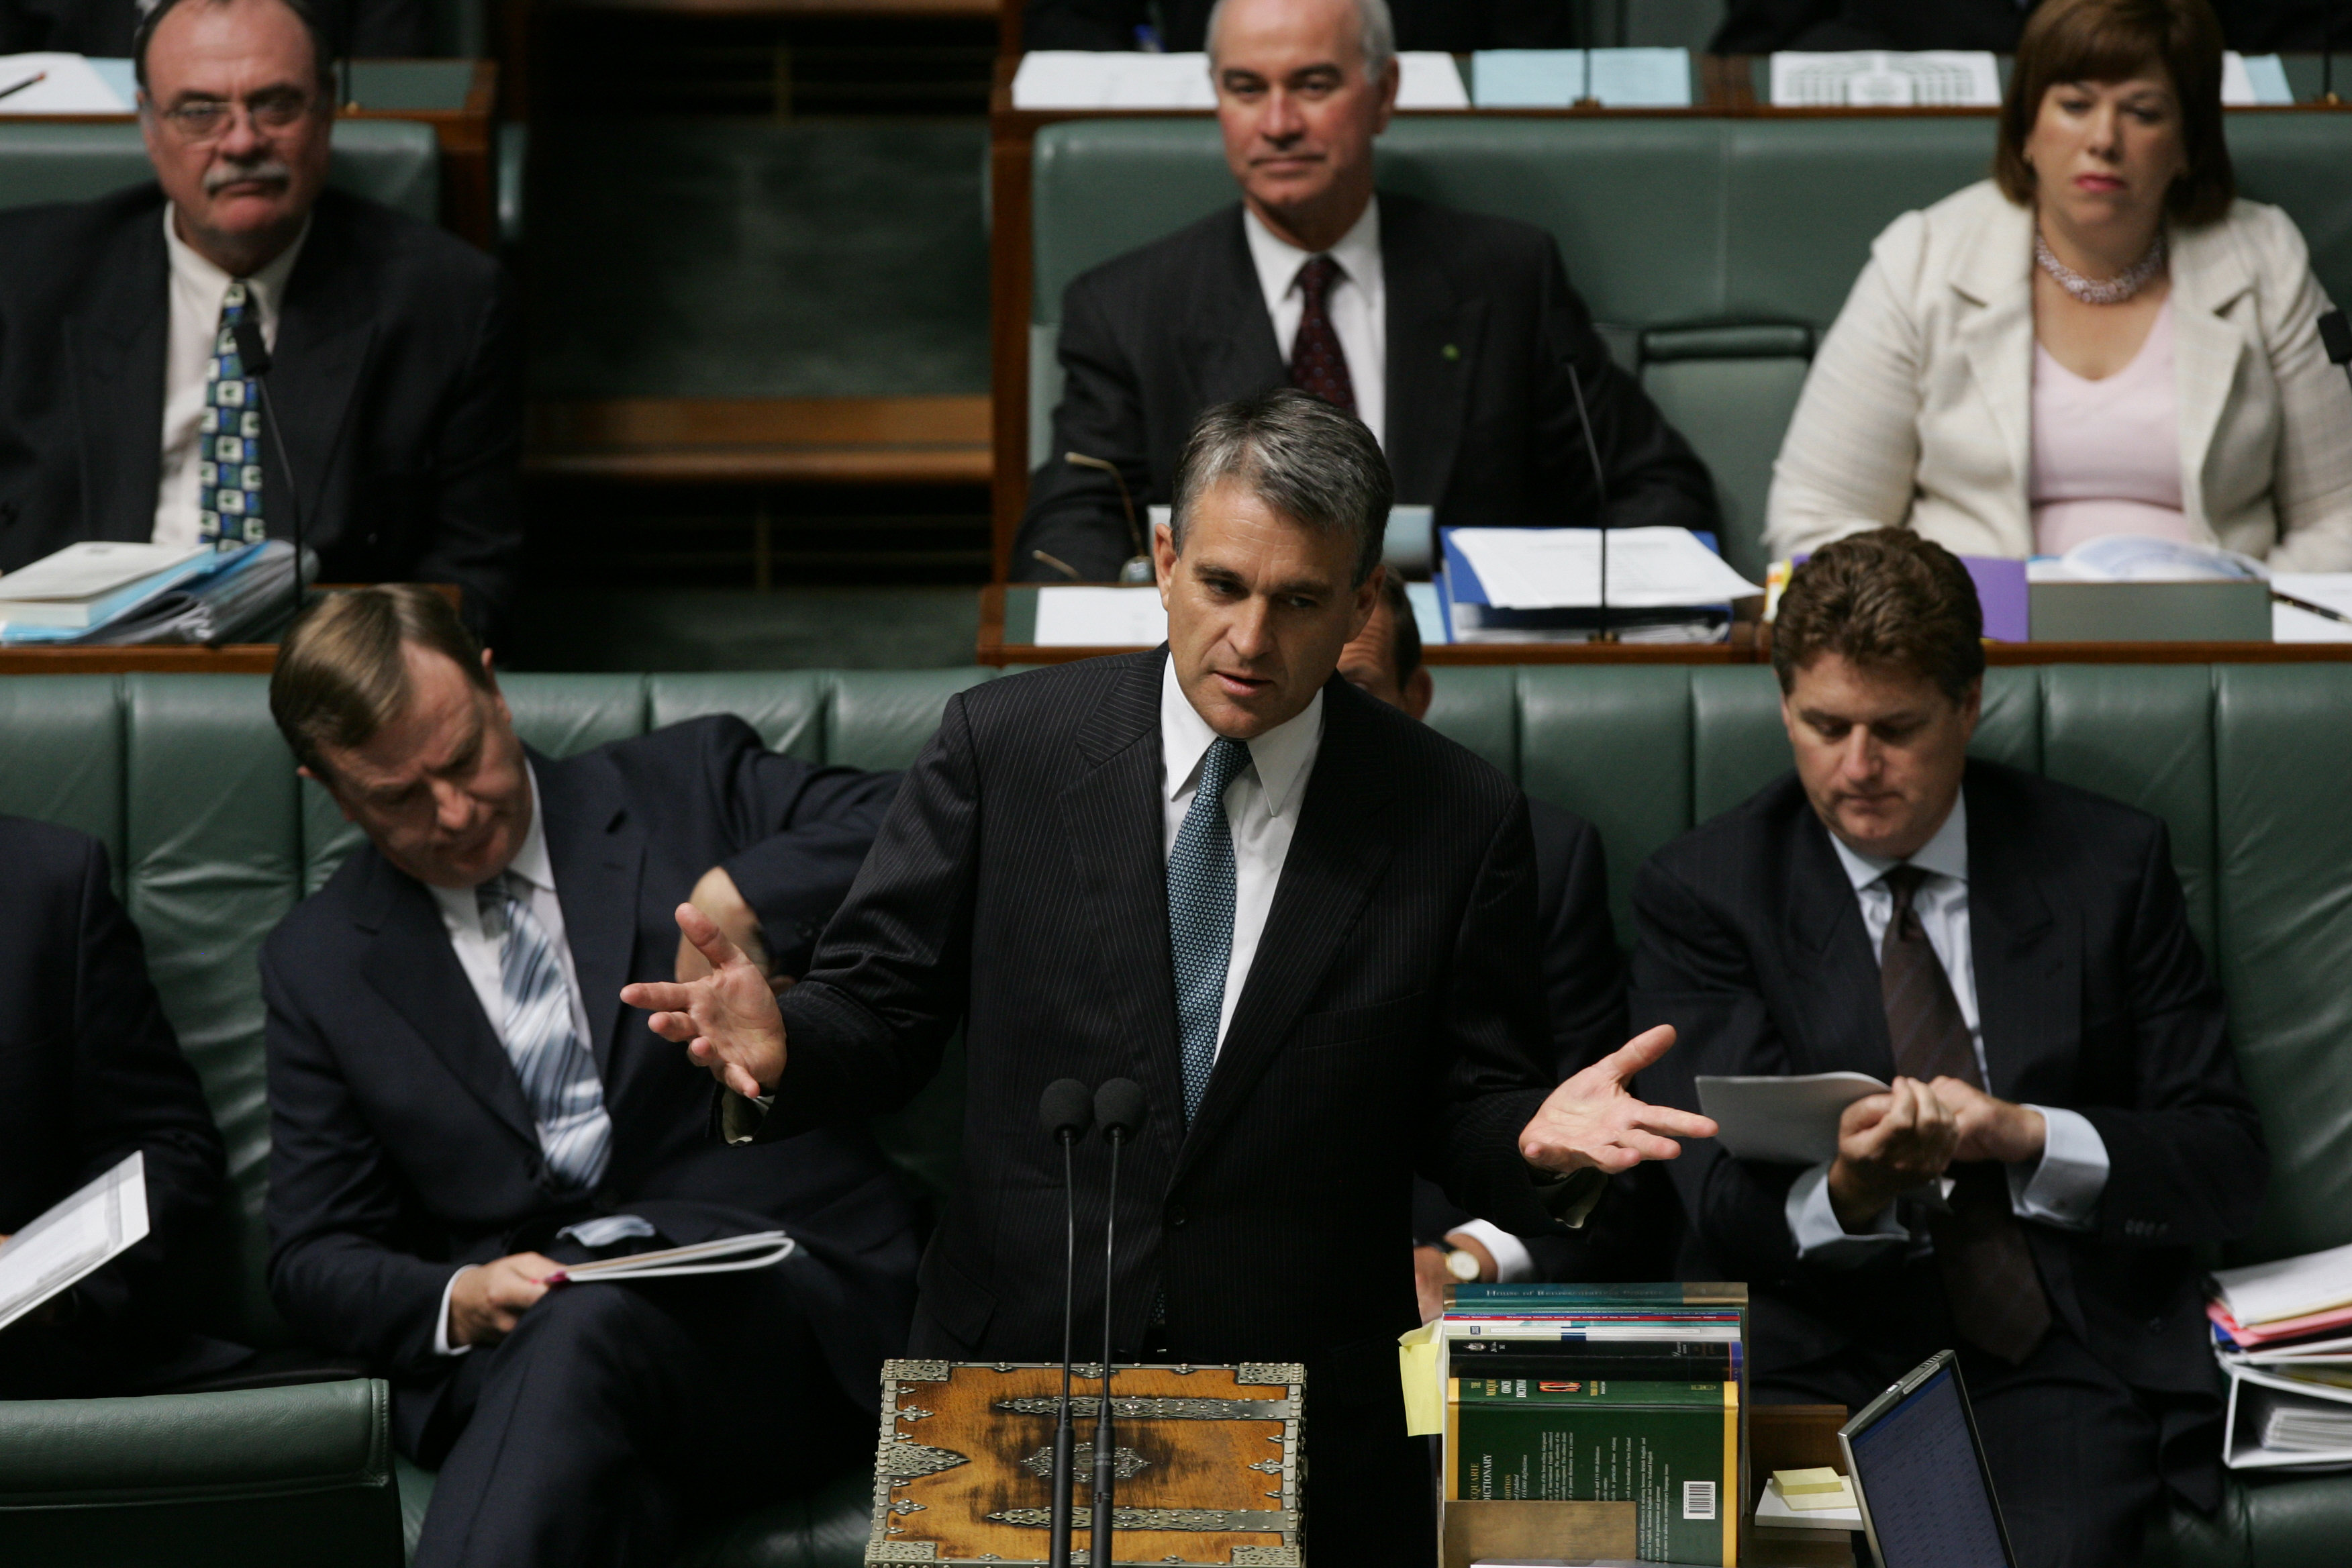 Acting Prime Minister John Anderson during Question Time in the House of Representatives in Federal Parliament on 29 November 2004.